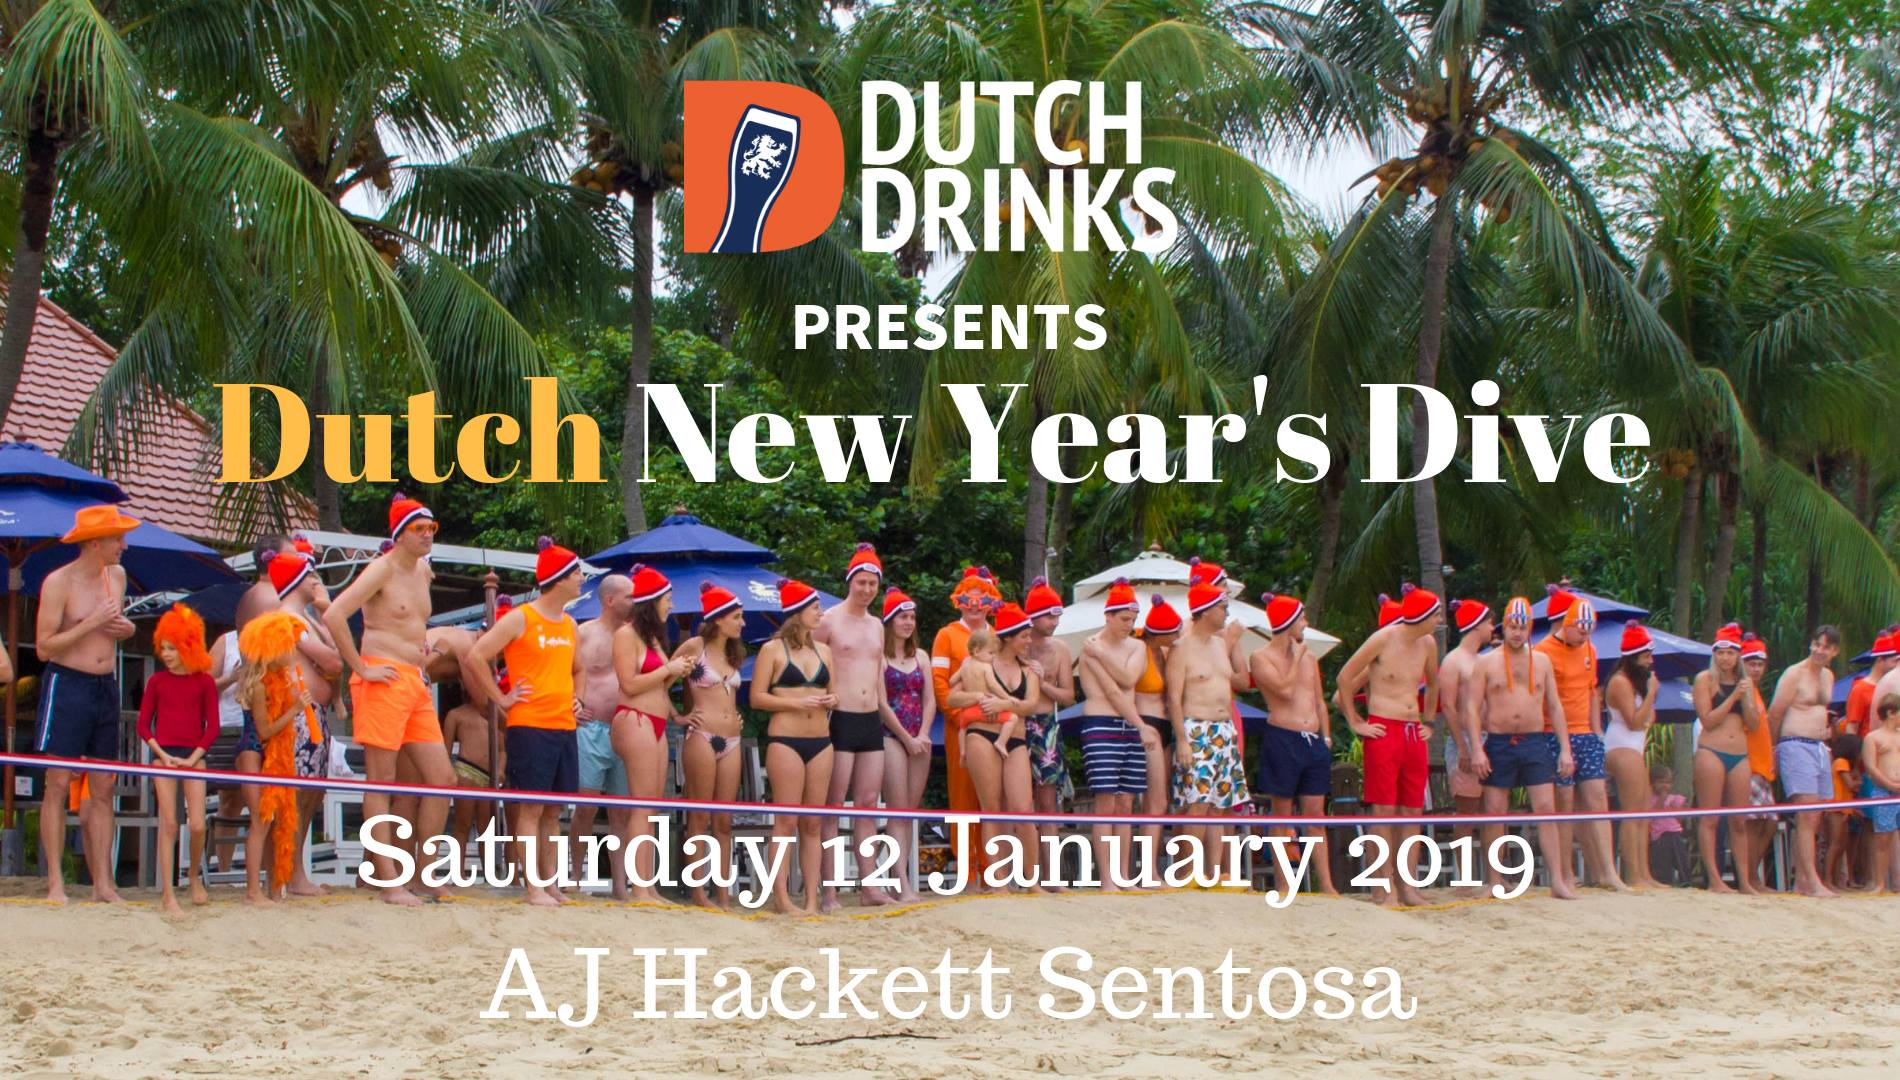 Dutch Drinks New Years' Dive